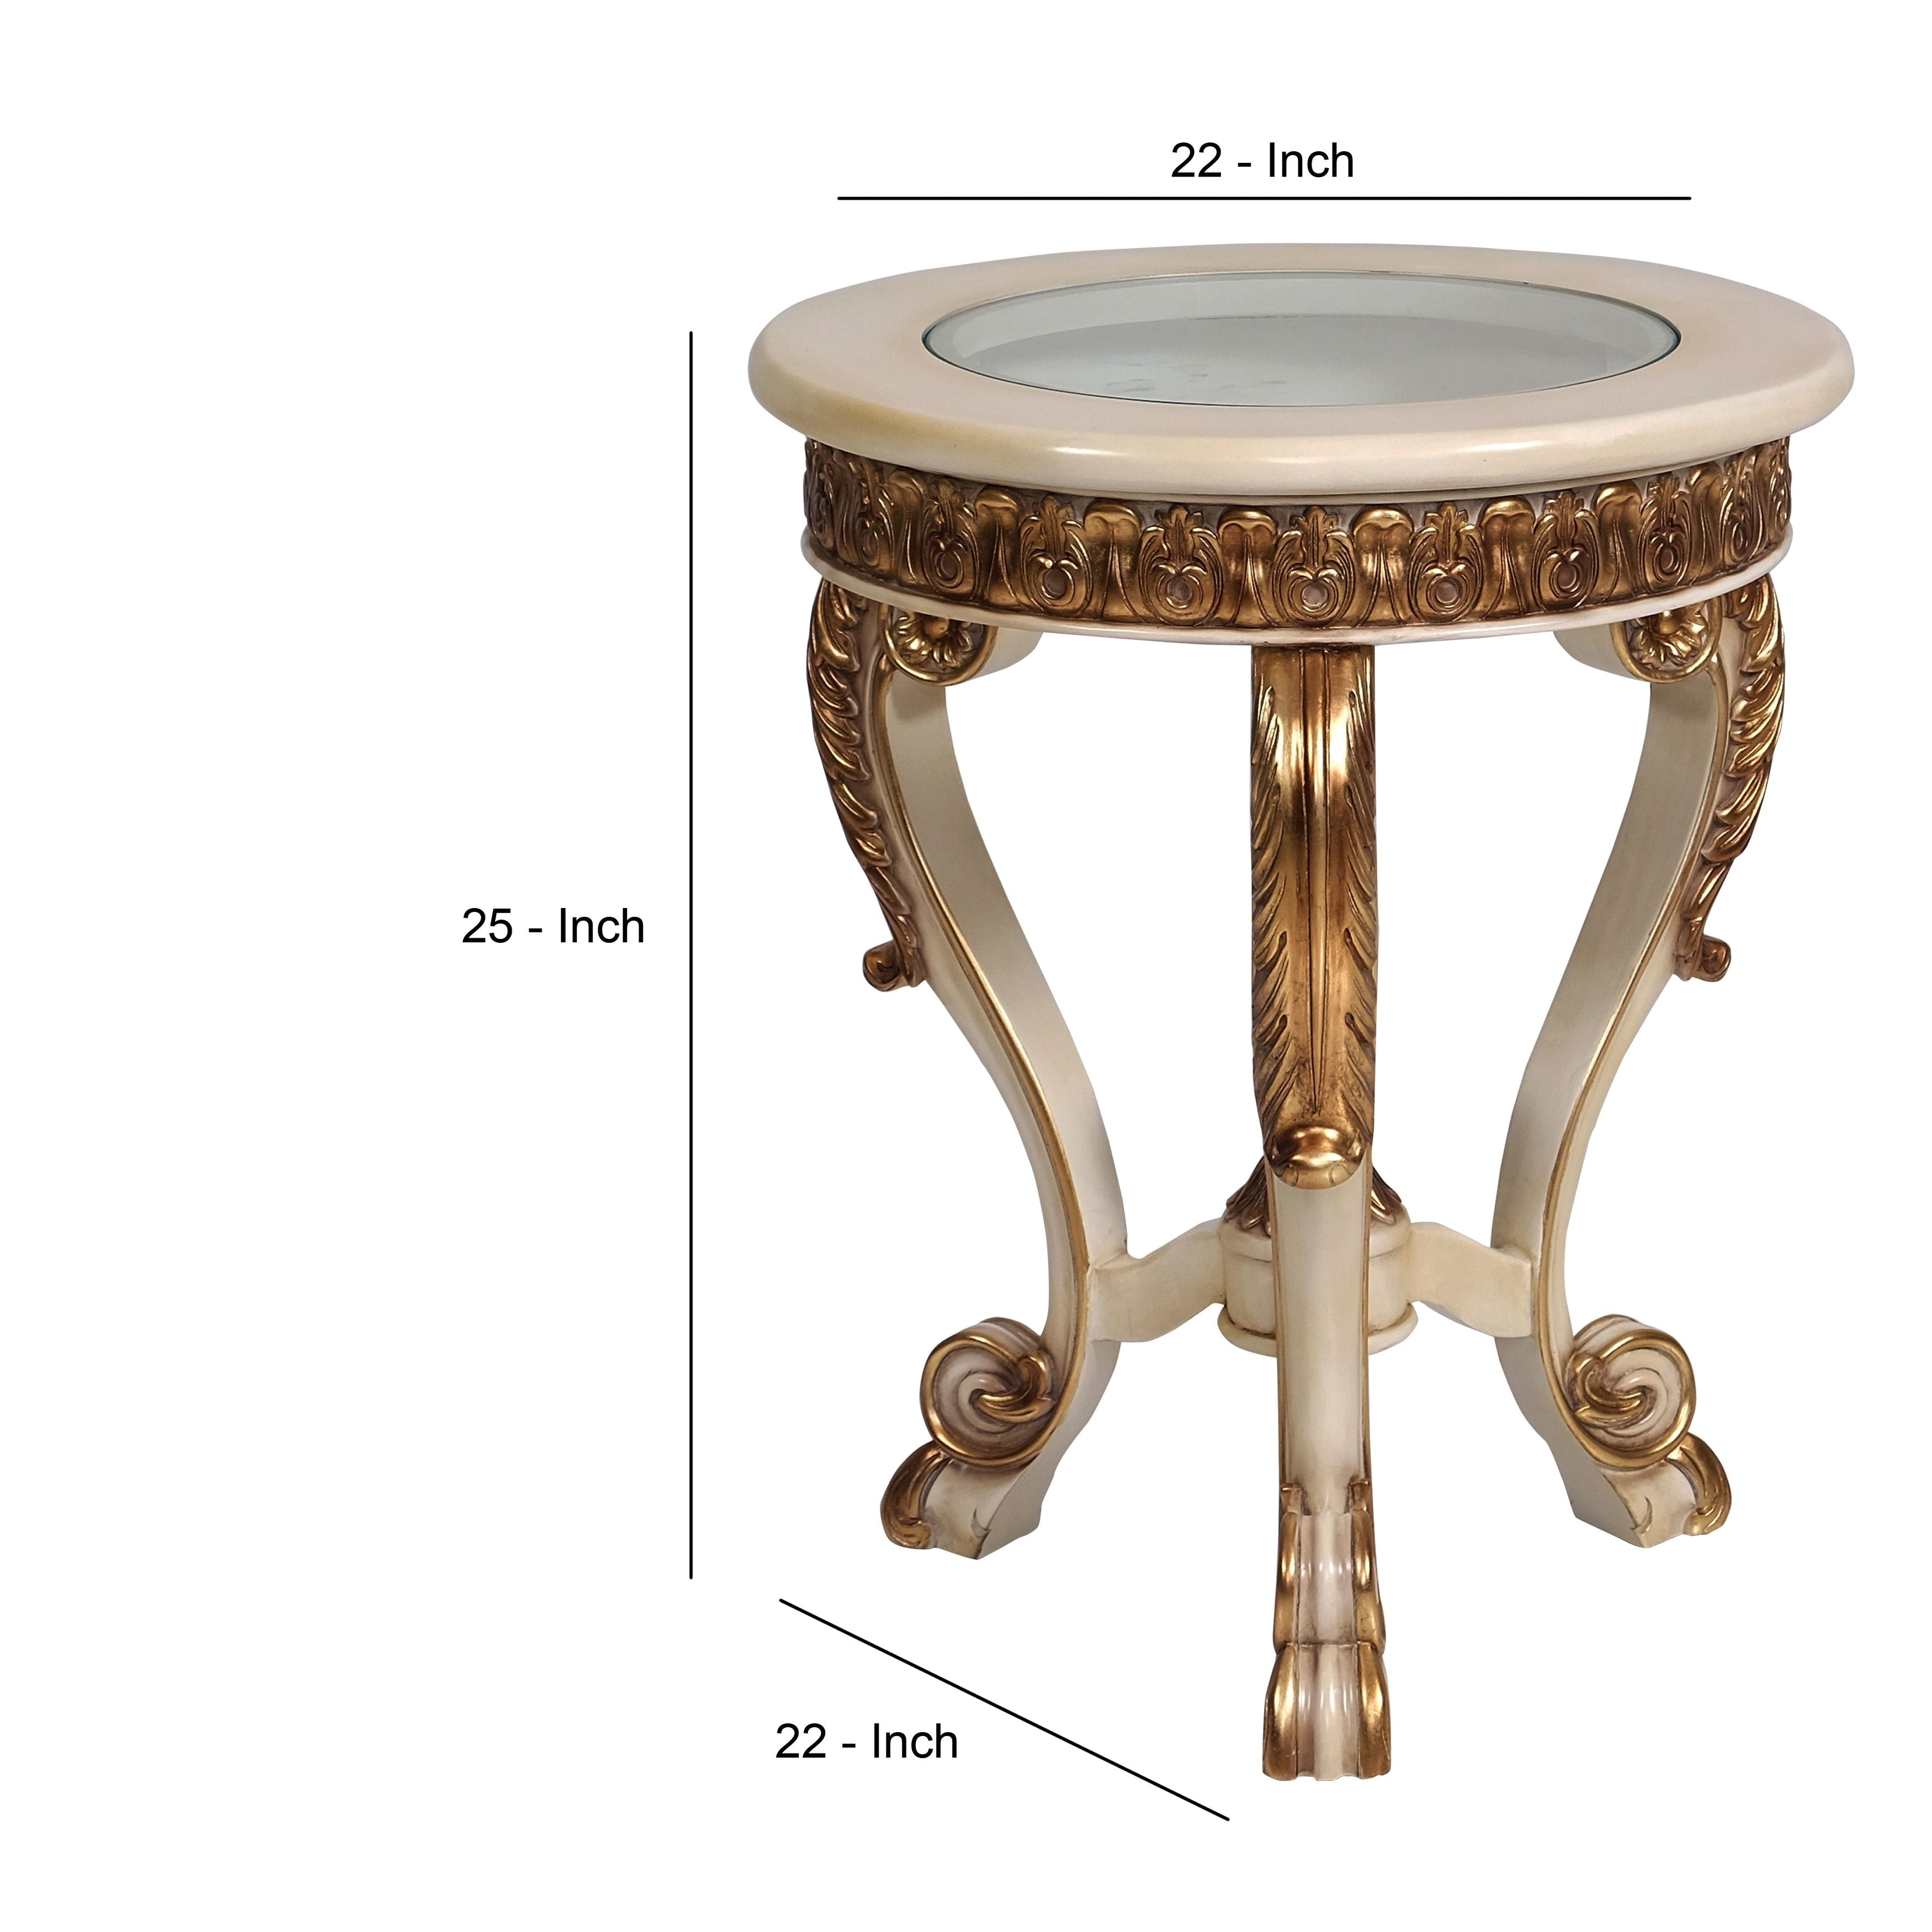 Traditional Wooden End Table With Scrolled Legs Beige And Cream